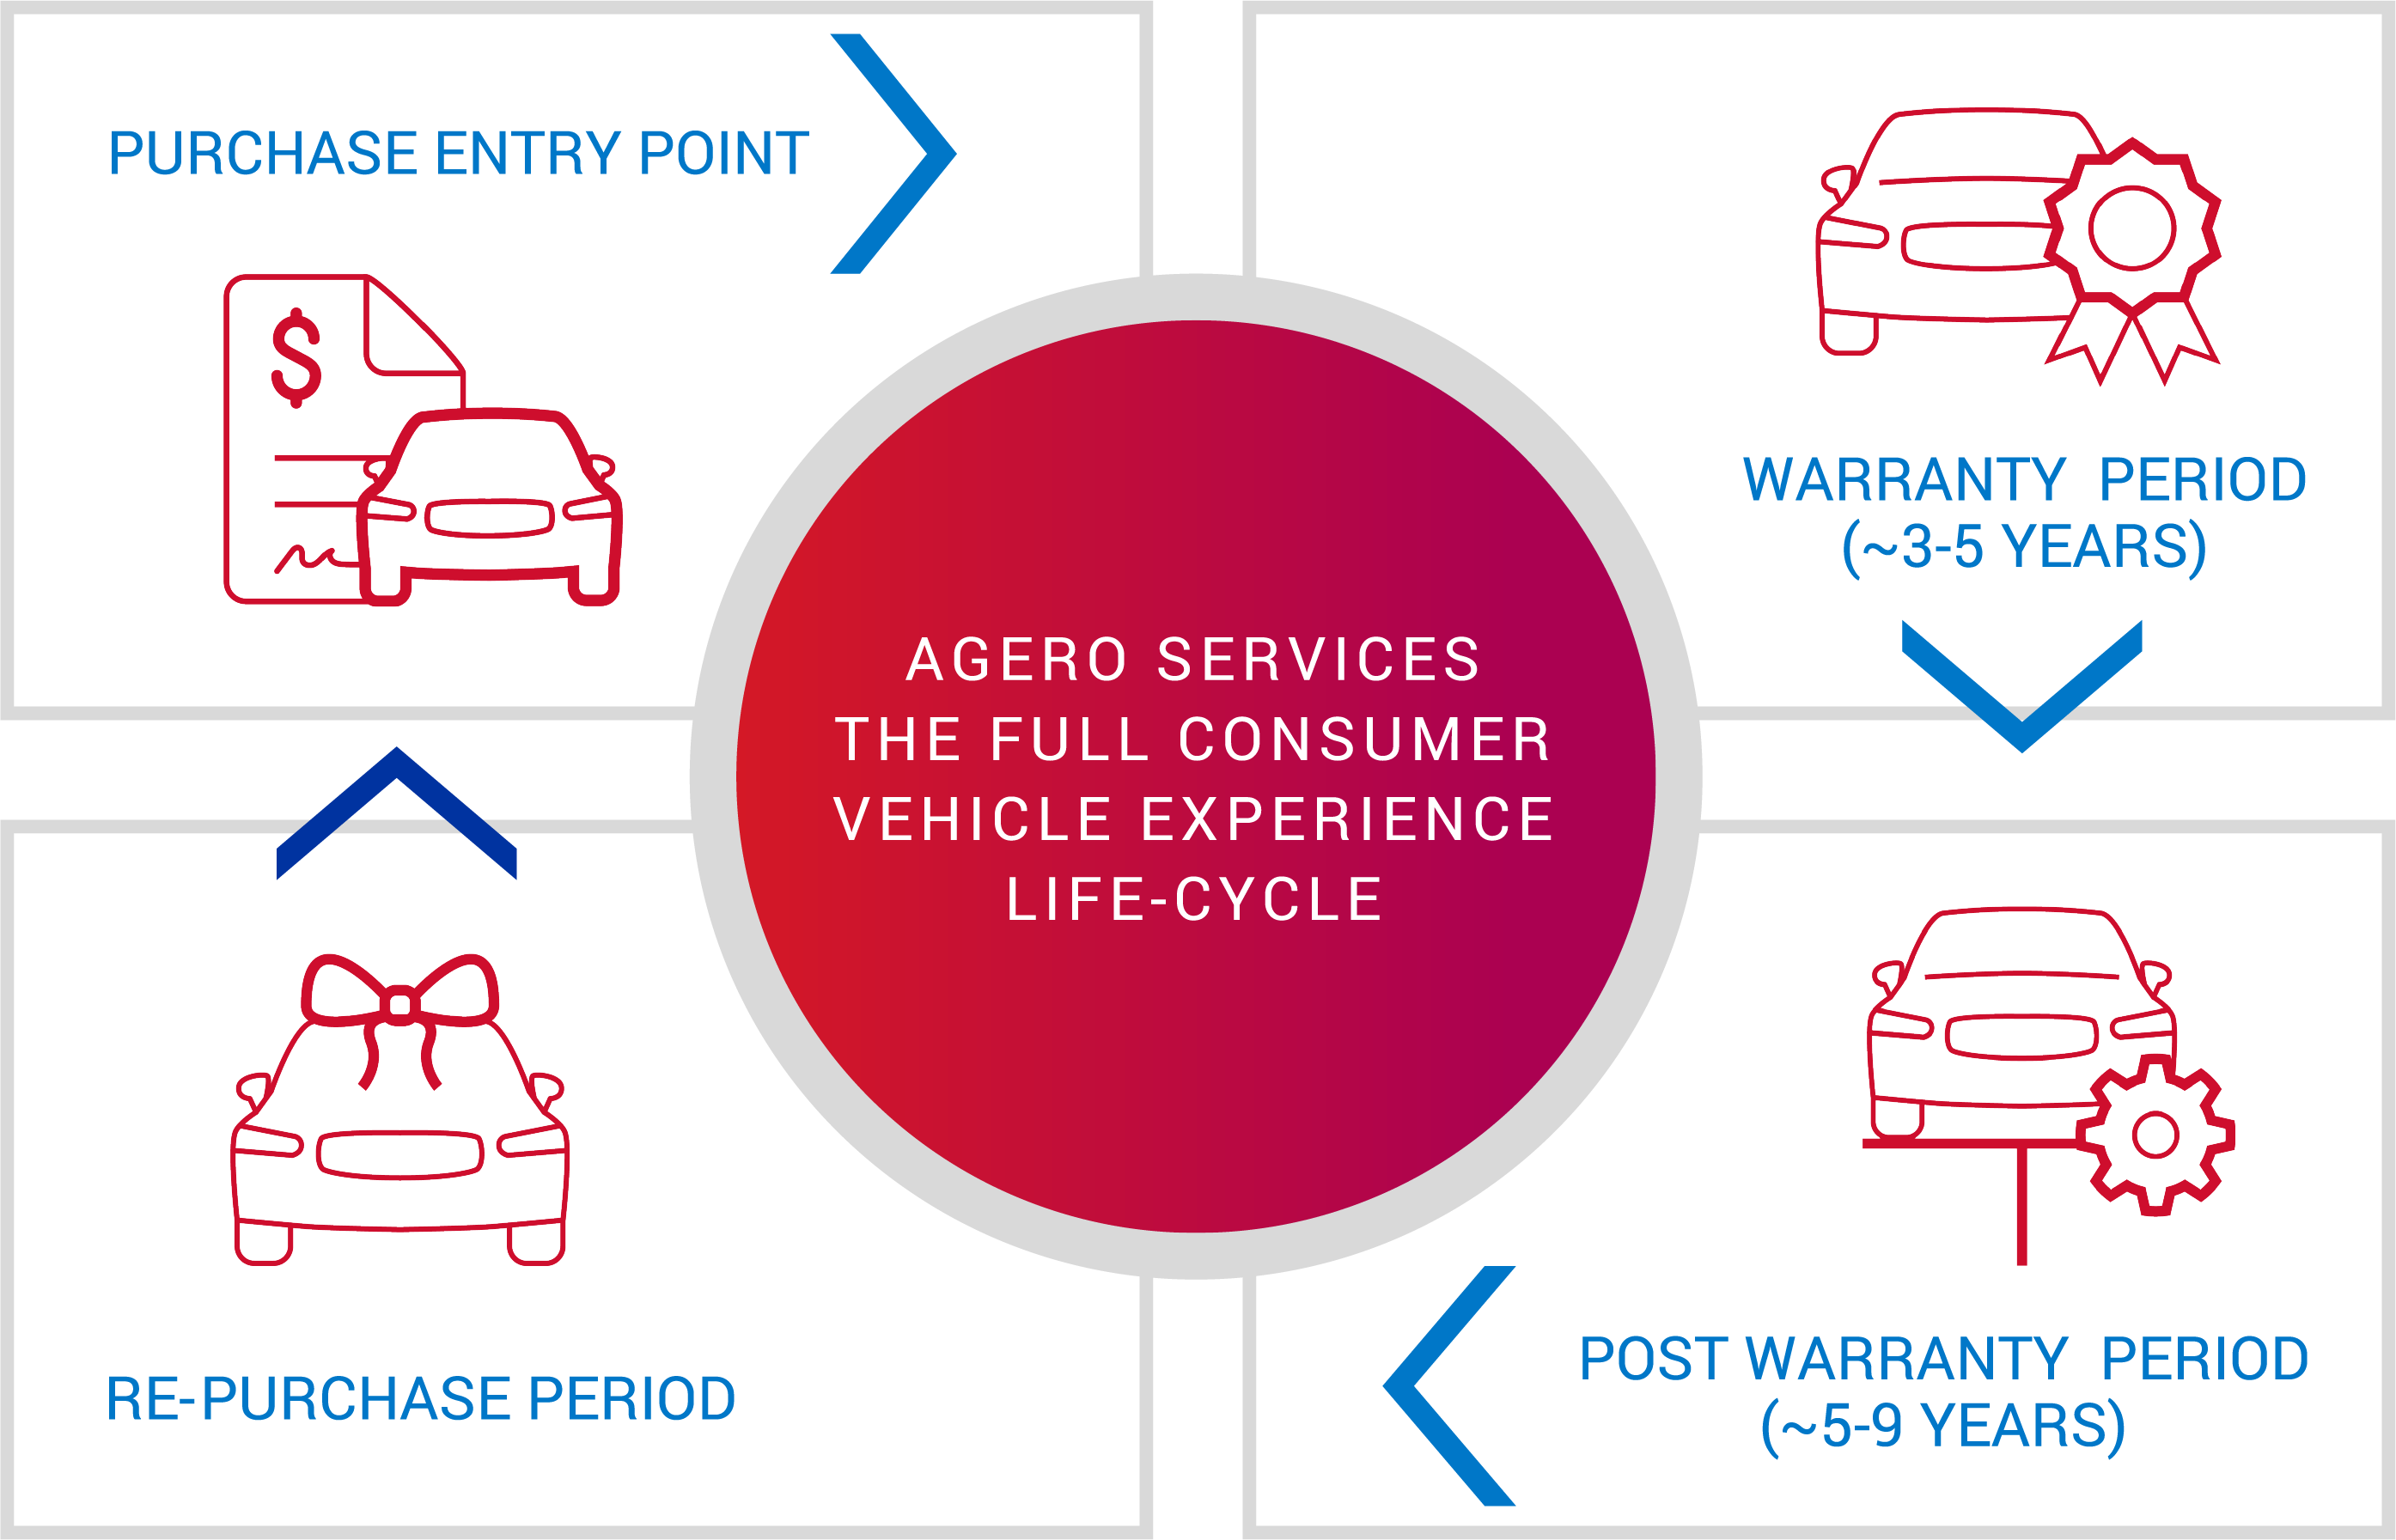 Agero Services the Full Consumer Vehicle Experience Life-Cycle with Outlines